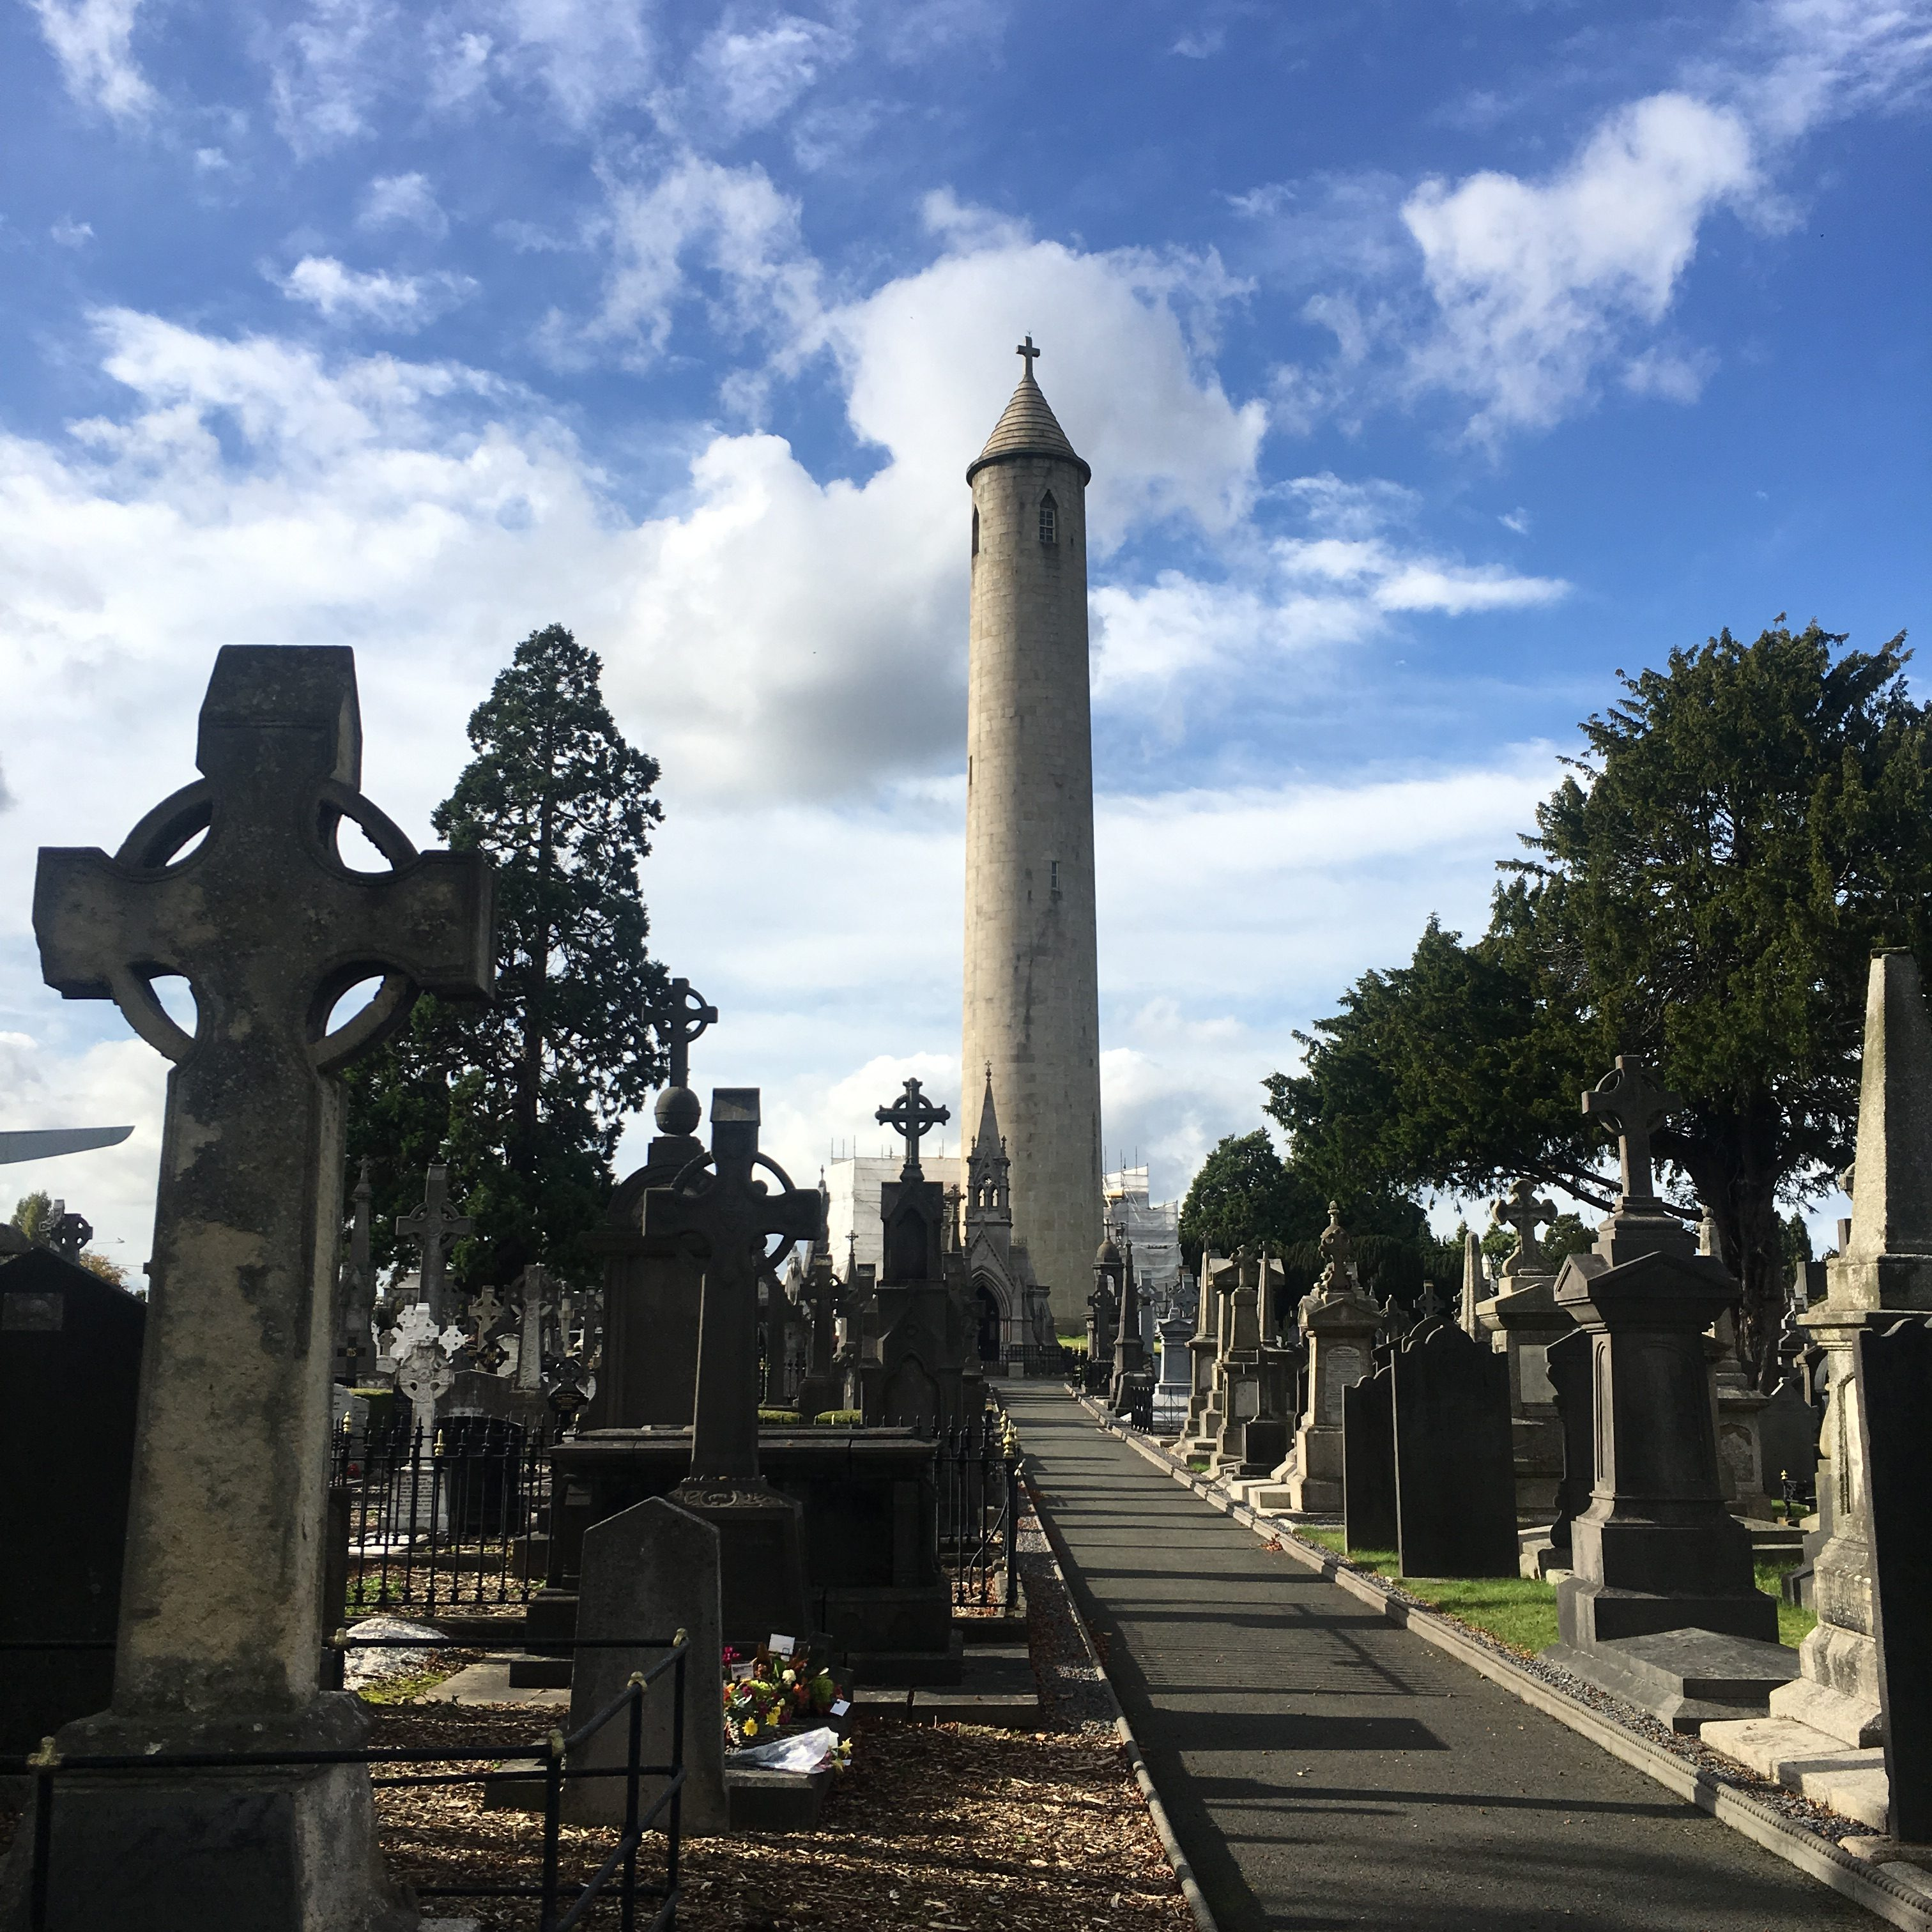 Fun fact about Glasnevin Cemetery: there are over 1.5million are buried in the cemetery, which is a greater number than people alive living in Dublin! If you believe a zombie apocalypse is coming, perhaps avoid living in Dublin! The tour cost EUR13, and it is rated one of the best tourist attractions in Dublin (according to Trip Advisor).